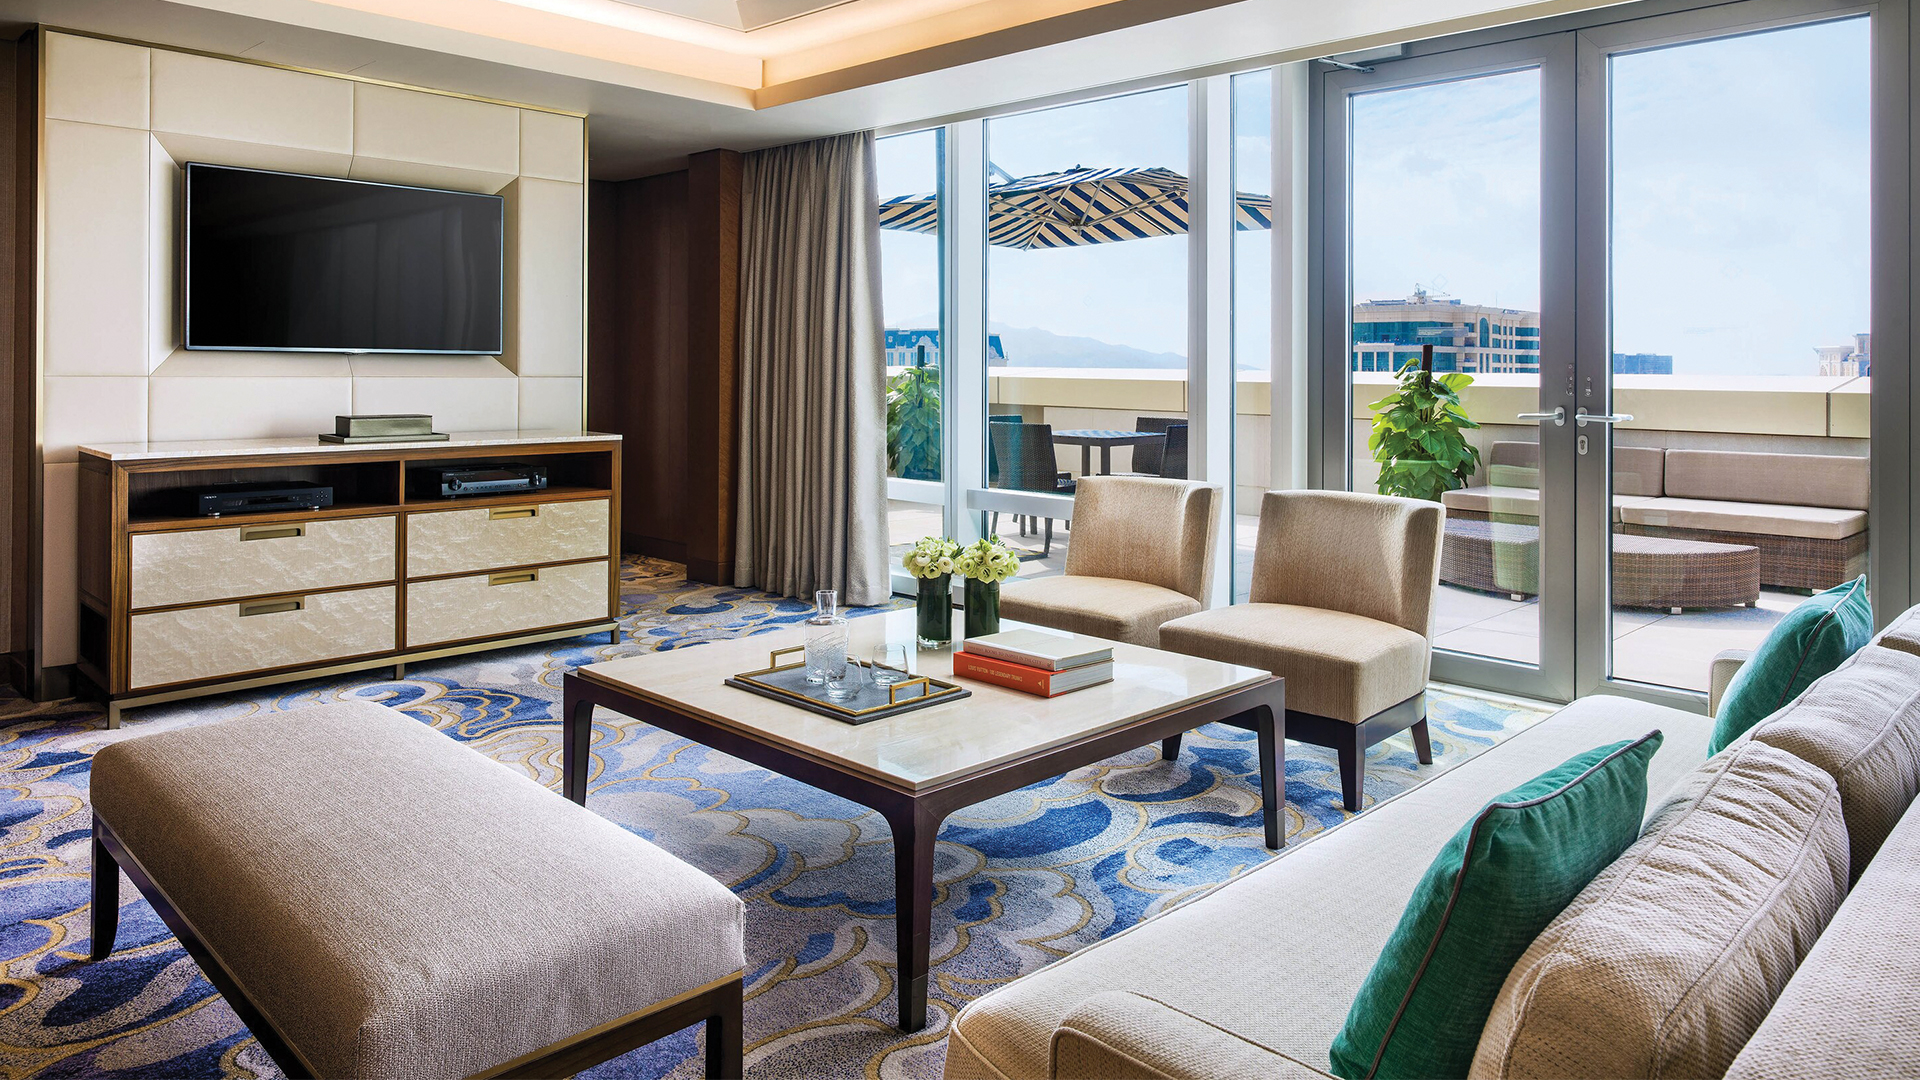 St. Regis suite with relaxing spaces inside and out